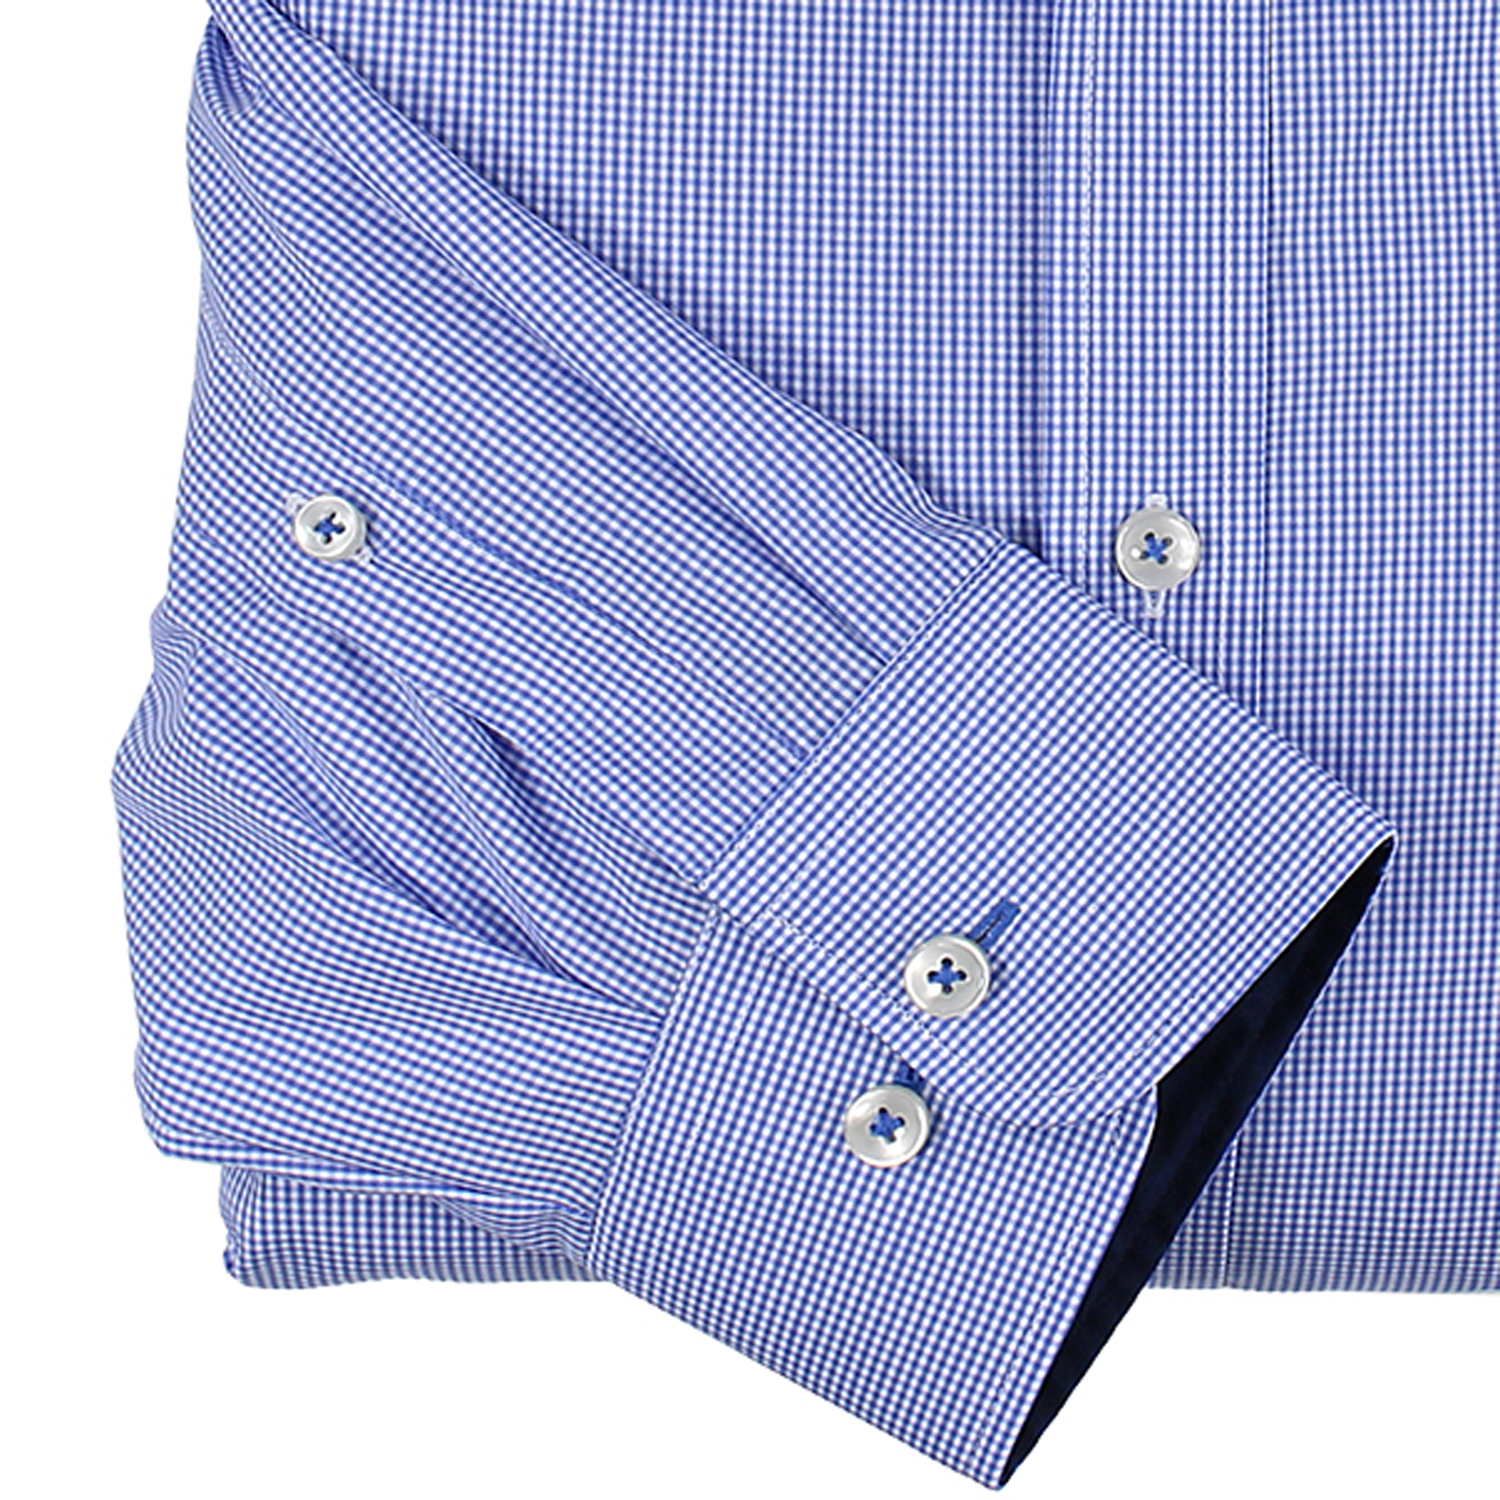 Detail Image to Checked long sleeve shirt in light blue by Casa Moda up to oversize 7XL